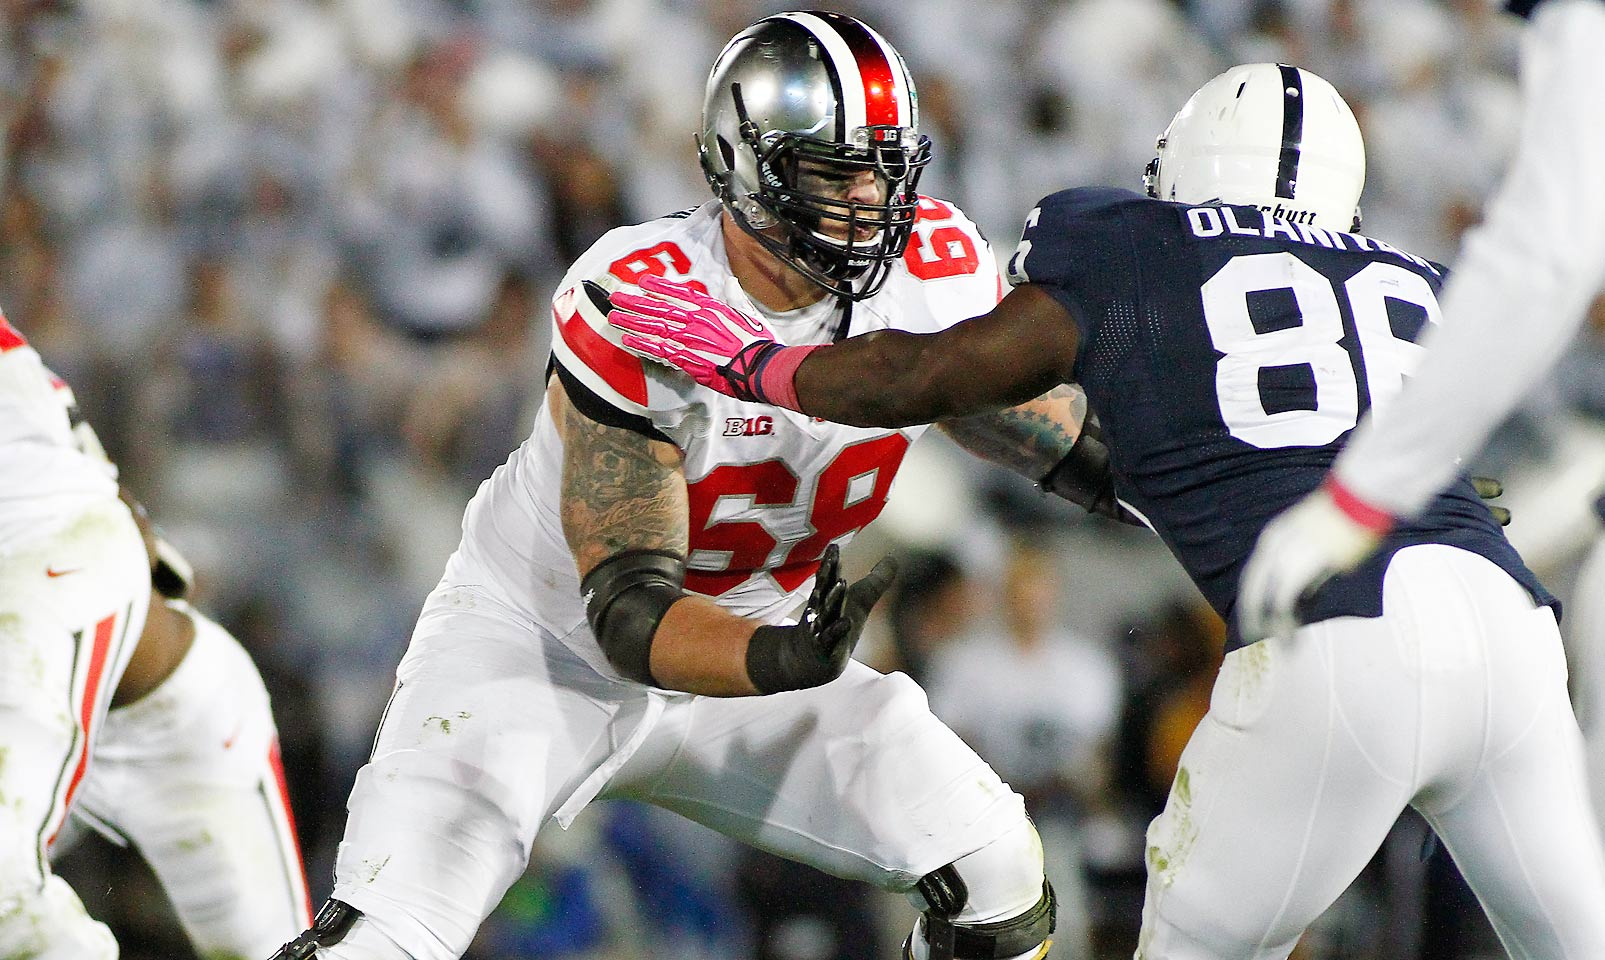 Decker is an absolute load along the offensive line for the Buckeyes. He not only paved the way for Ezekiel Elliott's late-season exploits, but he was also able to keep all three of Ohio State's quarterbacks relatively clean in the pocket. Decker's dominance on the line should help the Buckeyes' high-powered offense continue to shine this fall.